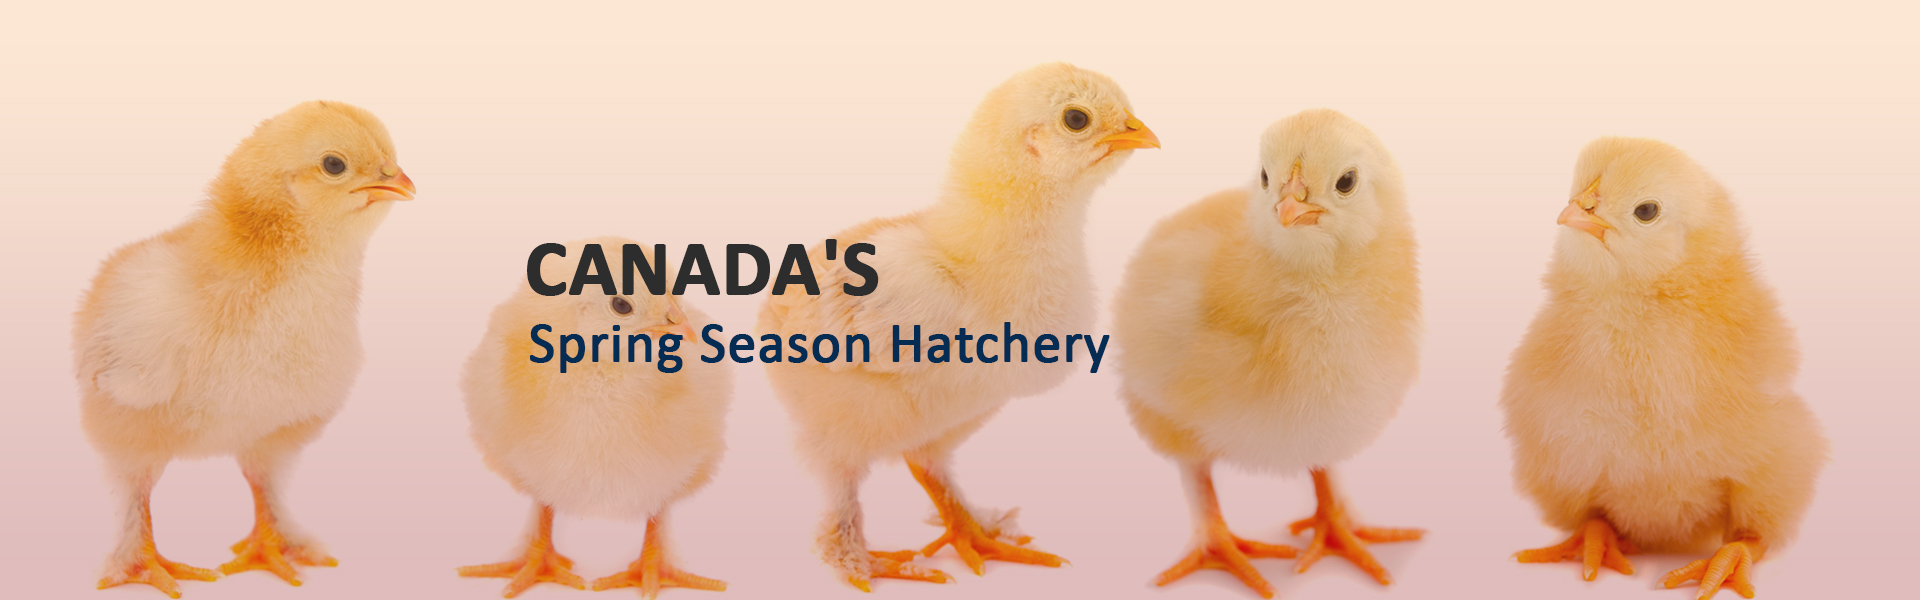 Rochester Hatchery is Canada's larget spring hatchery, specializing